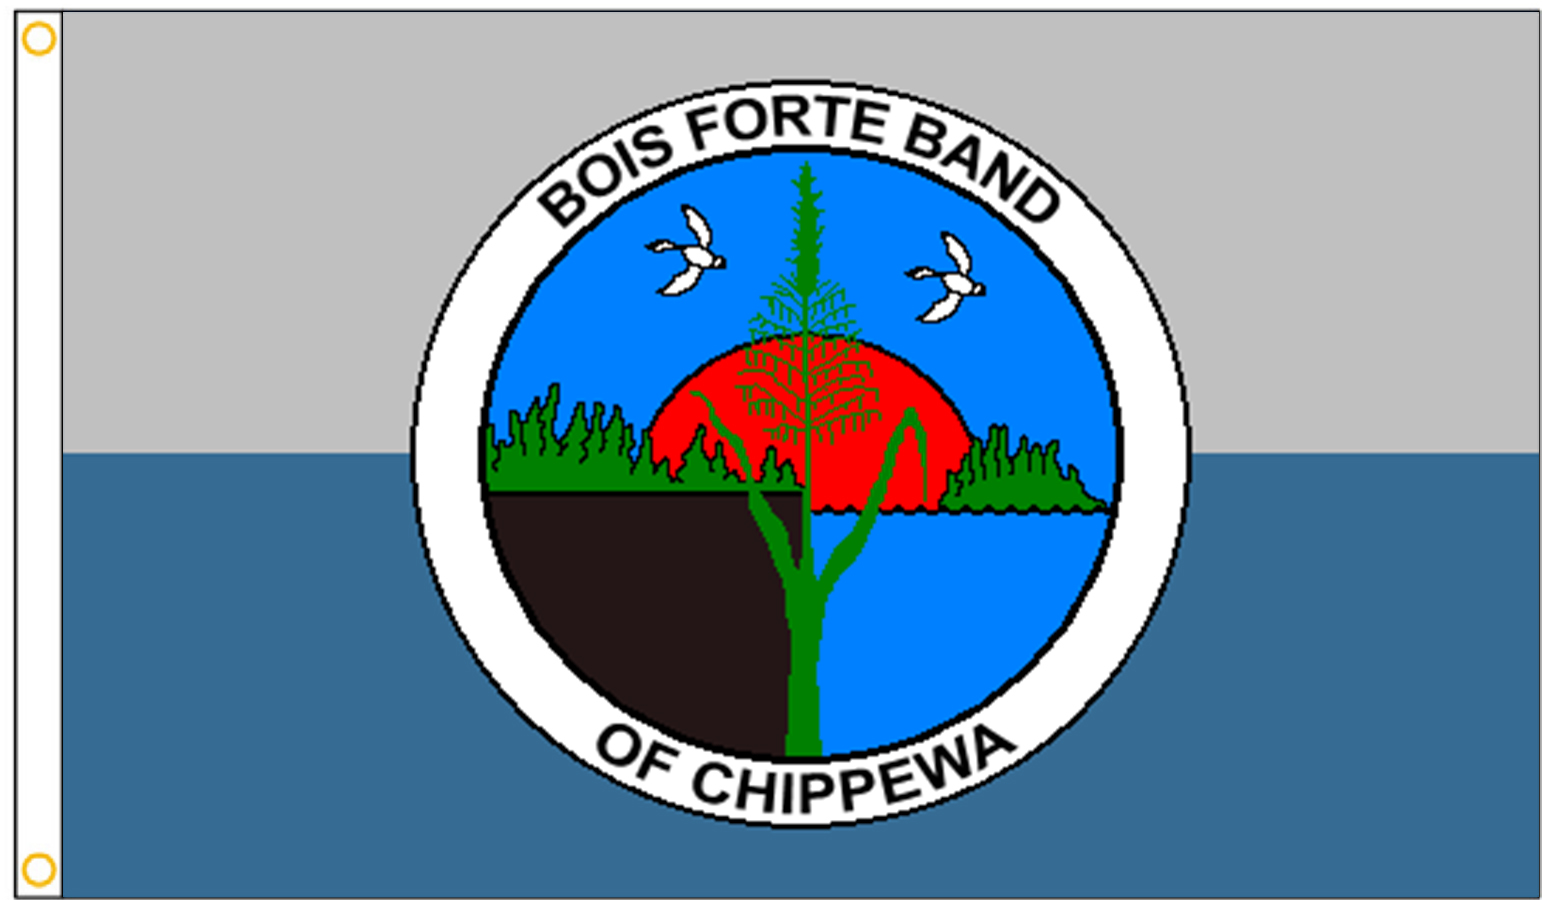 Bois Forte Band of Chippewa Flags